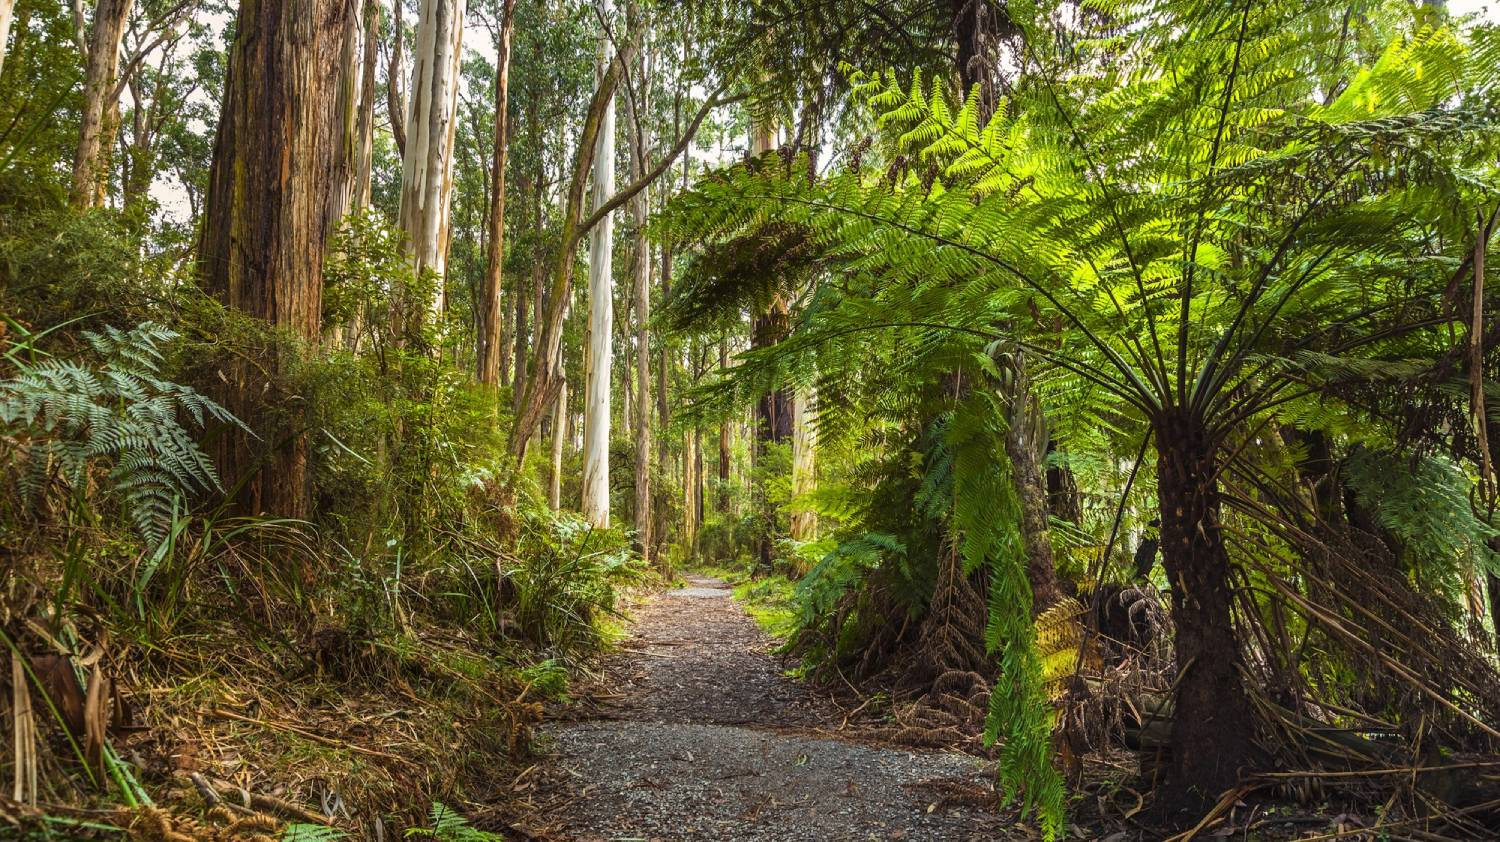 Dandenong Ranges - Things To Do In Australia